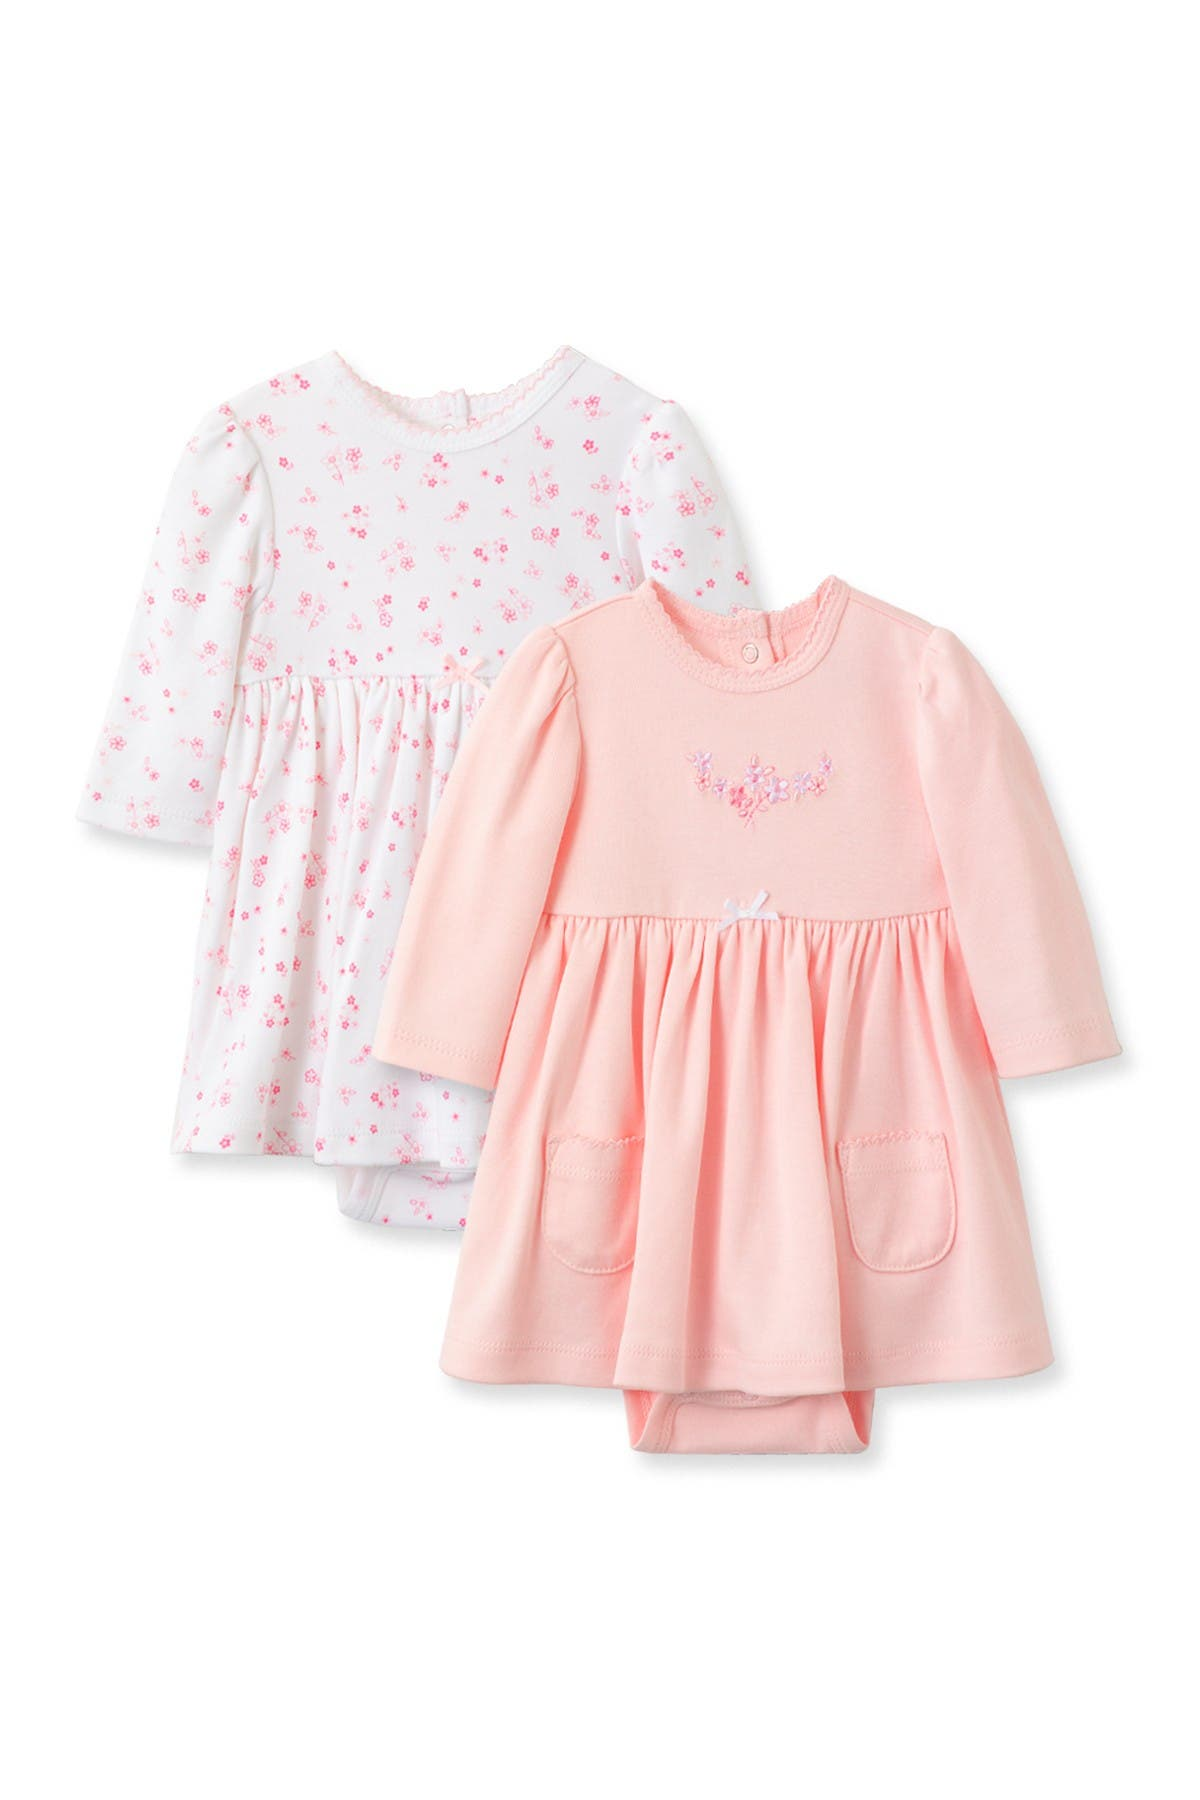 Image of Little Me Love Coverall Dress Set - Pack of 2